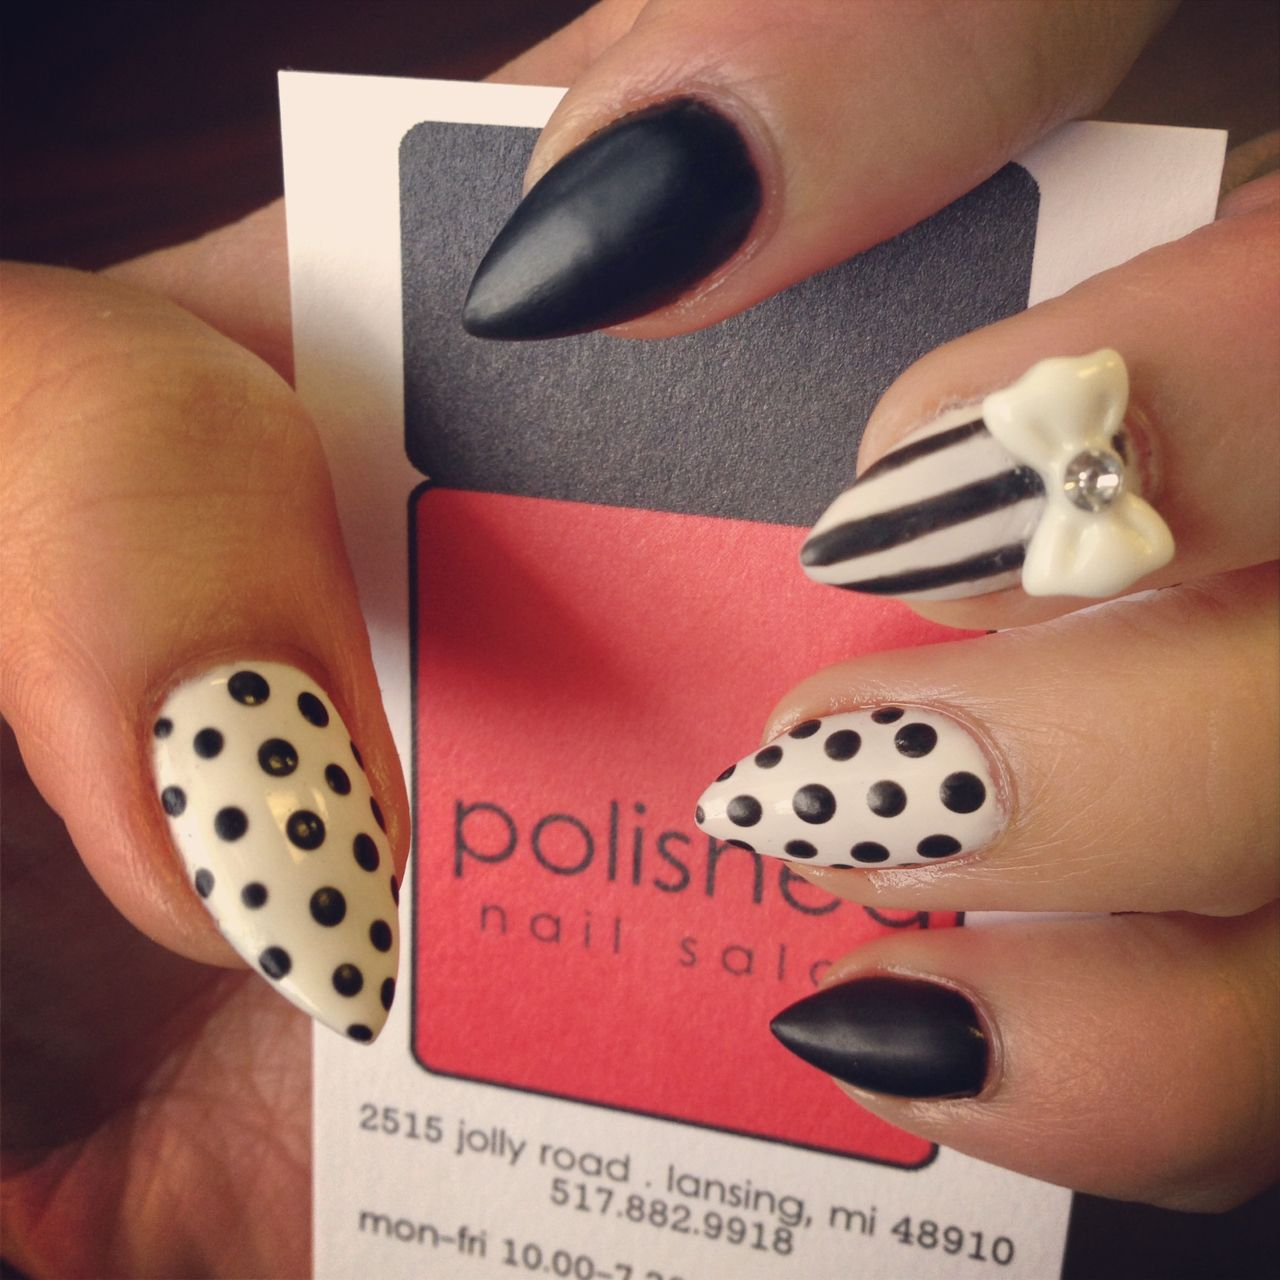 17 best images about nail craze on pinterest nail art tribal designs and manicures